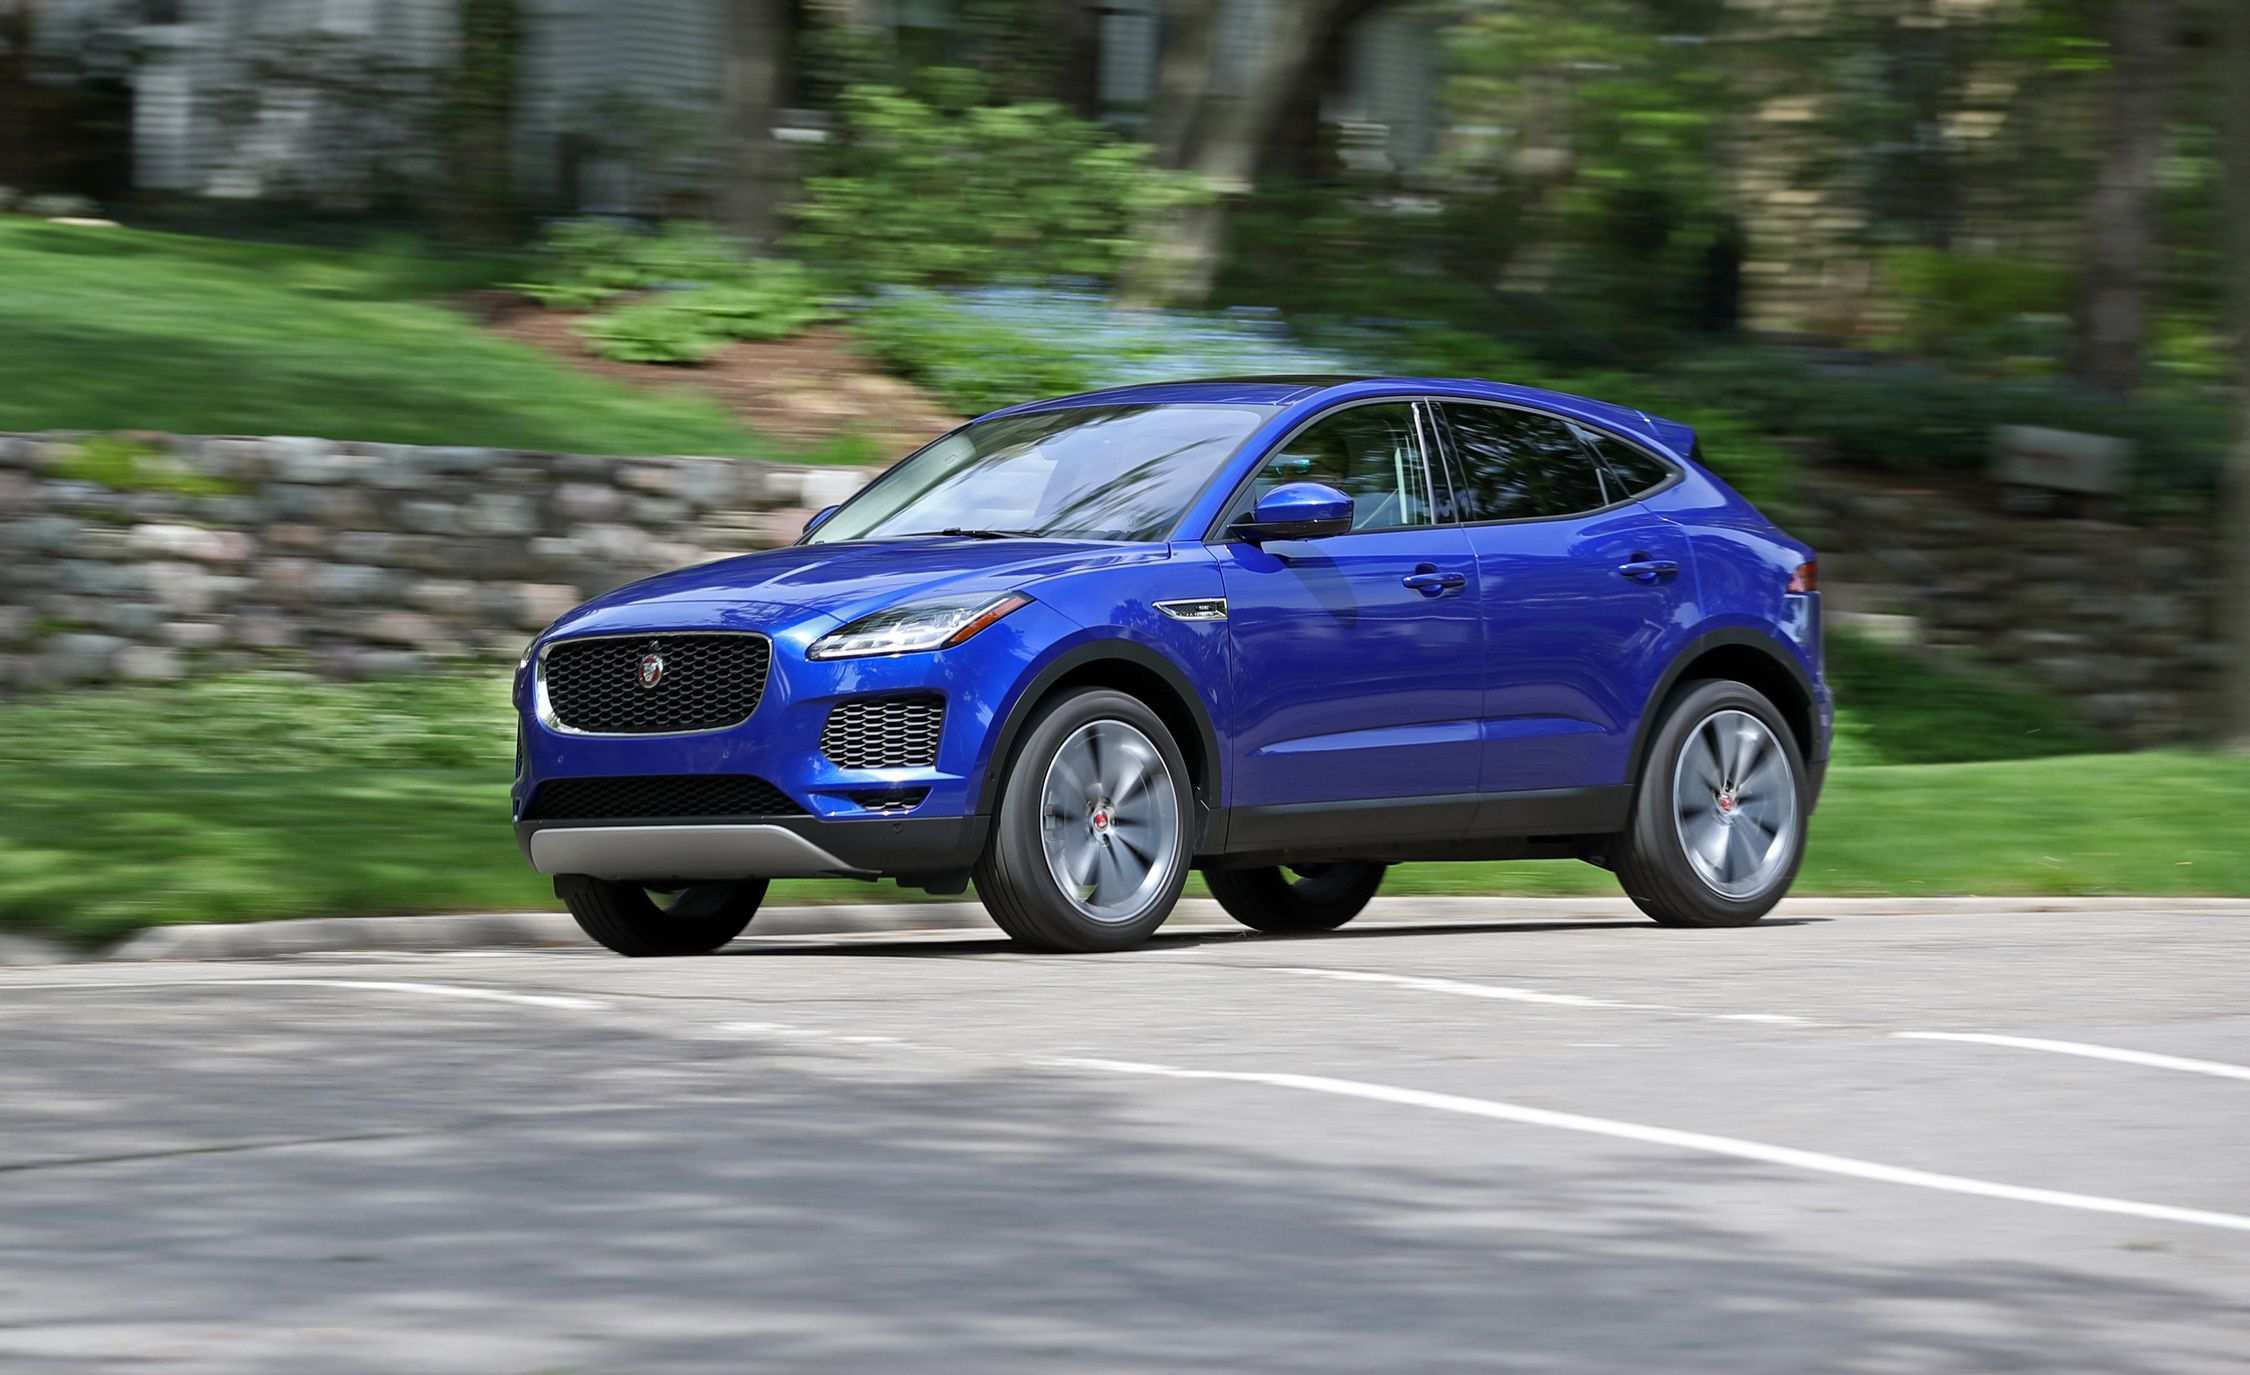 91 The 2019 Jaguar E Pace Price Research New for 2019 Jaguar E Pace Price